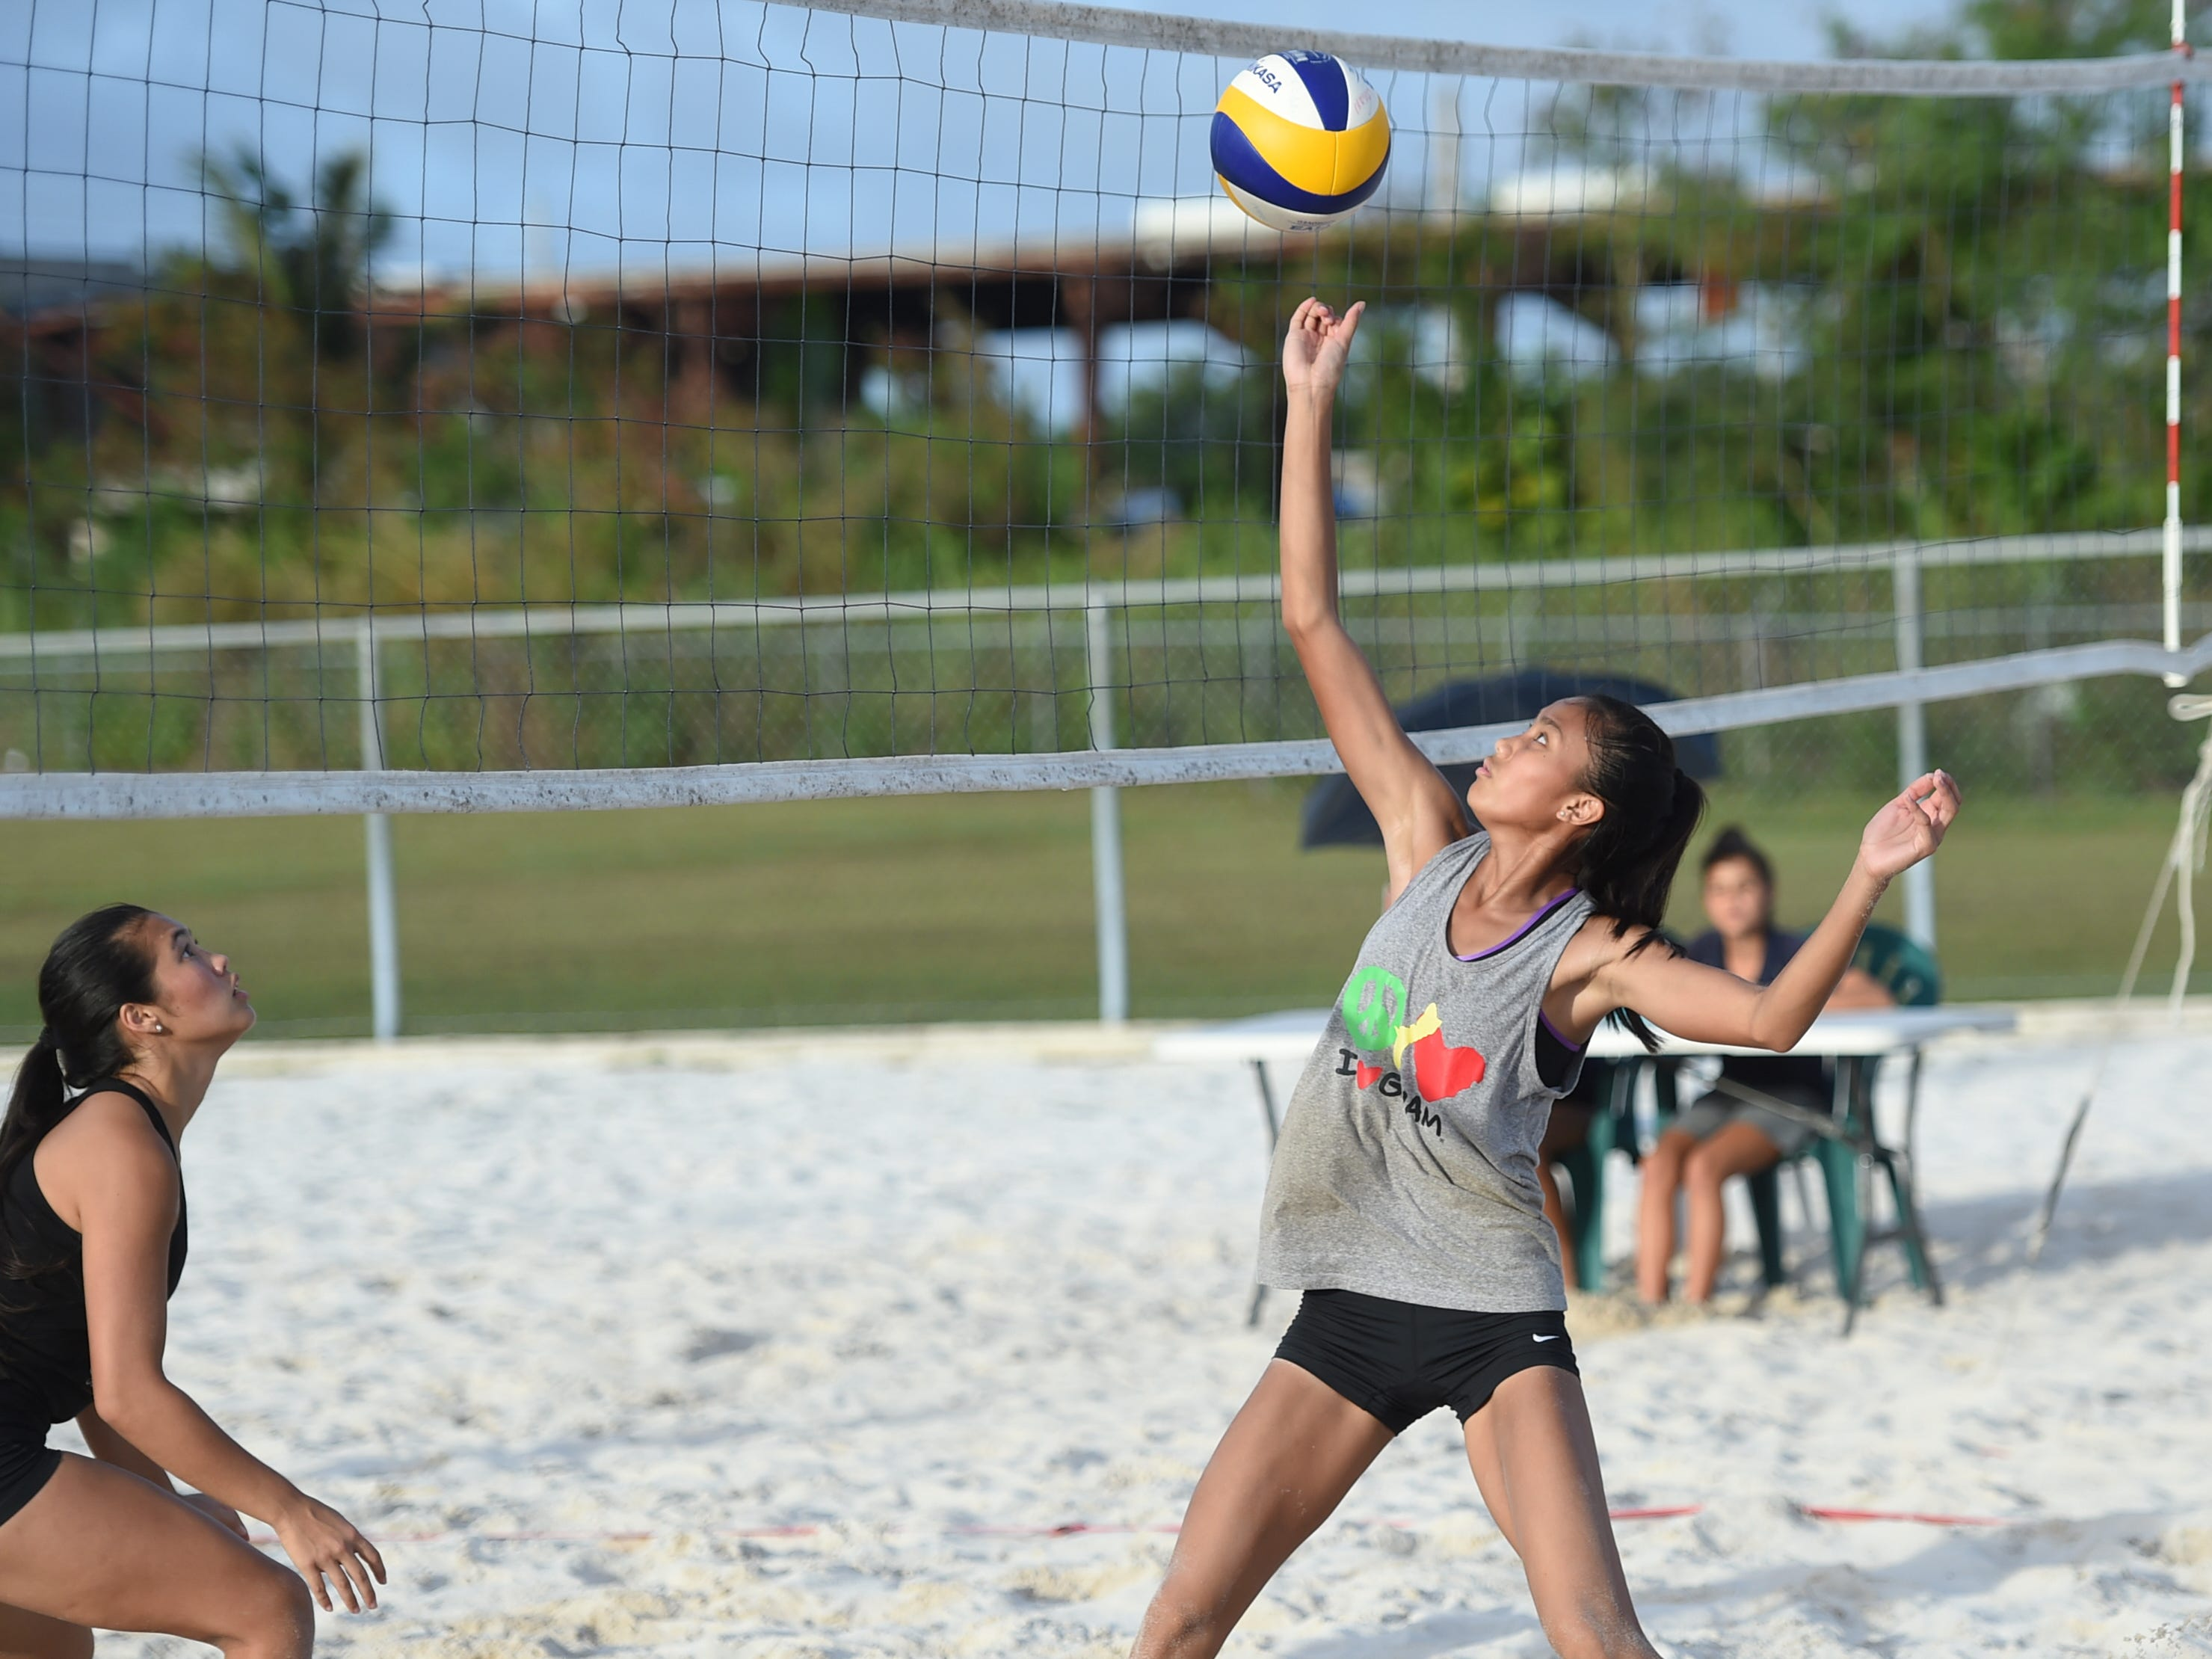 Kristen Serrano competes during the IIAAG Beach Volleyball championship game at the Guam Football Association National Training Center in Dededo, March 12, 2019.